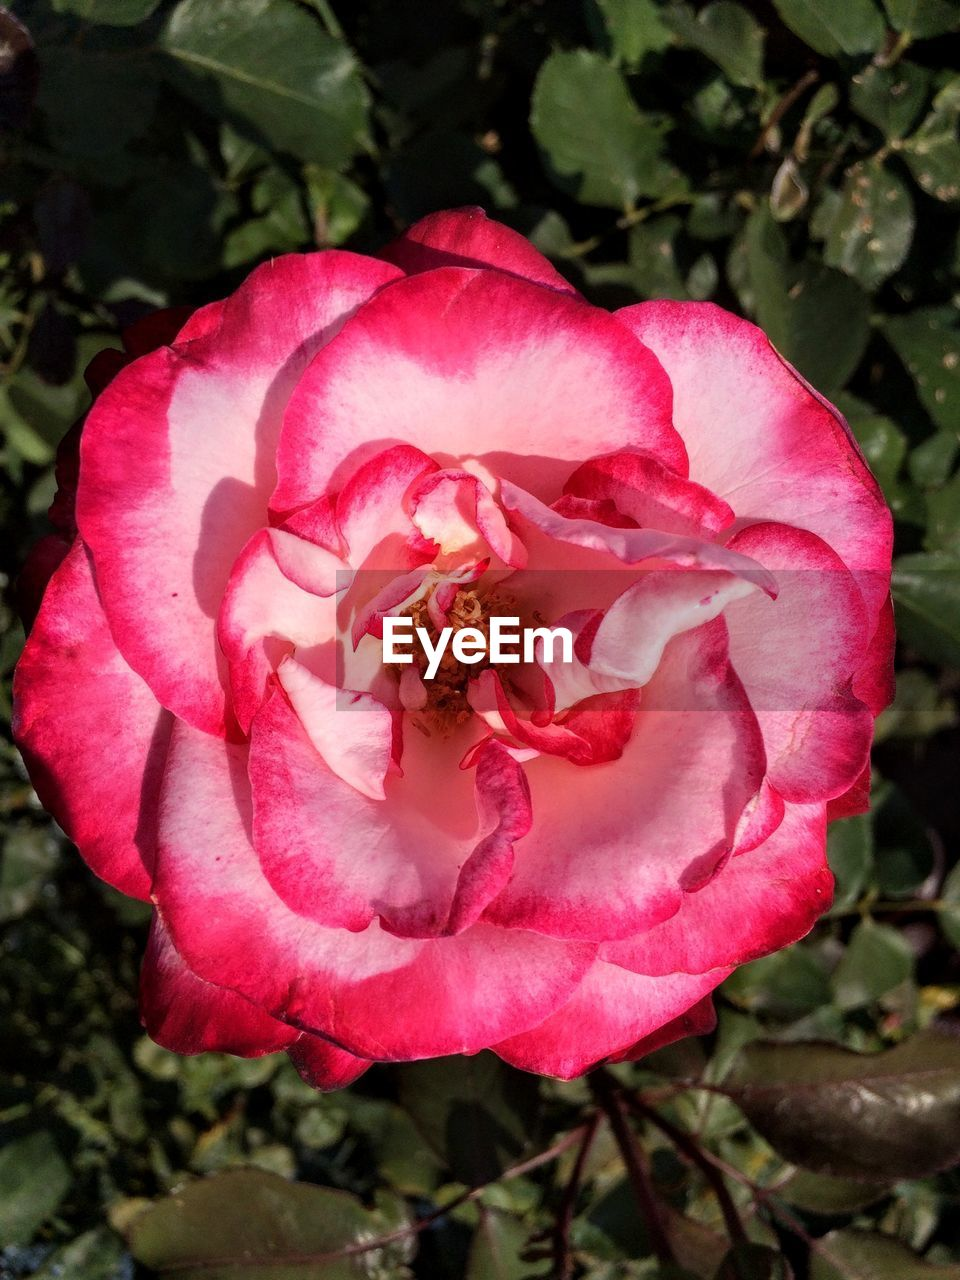 flower, flowering plant, petal, beauty in nature, freshness, plant, vulnerability, fragility, close-up, growth, flower head, pink color, inflorescence, rose, nature, focus on foreground, day, wild rose, rose - flower, no people, outdoors, pollen, softness